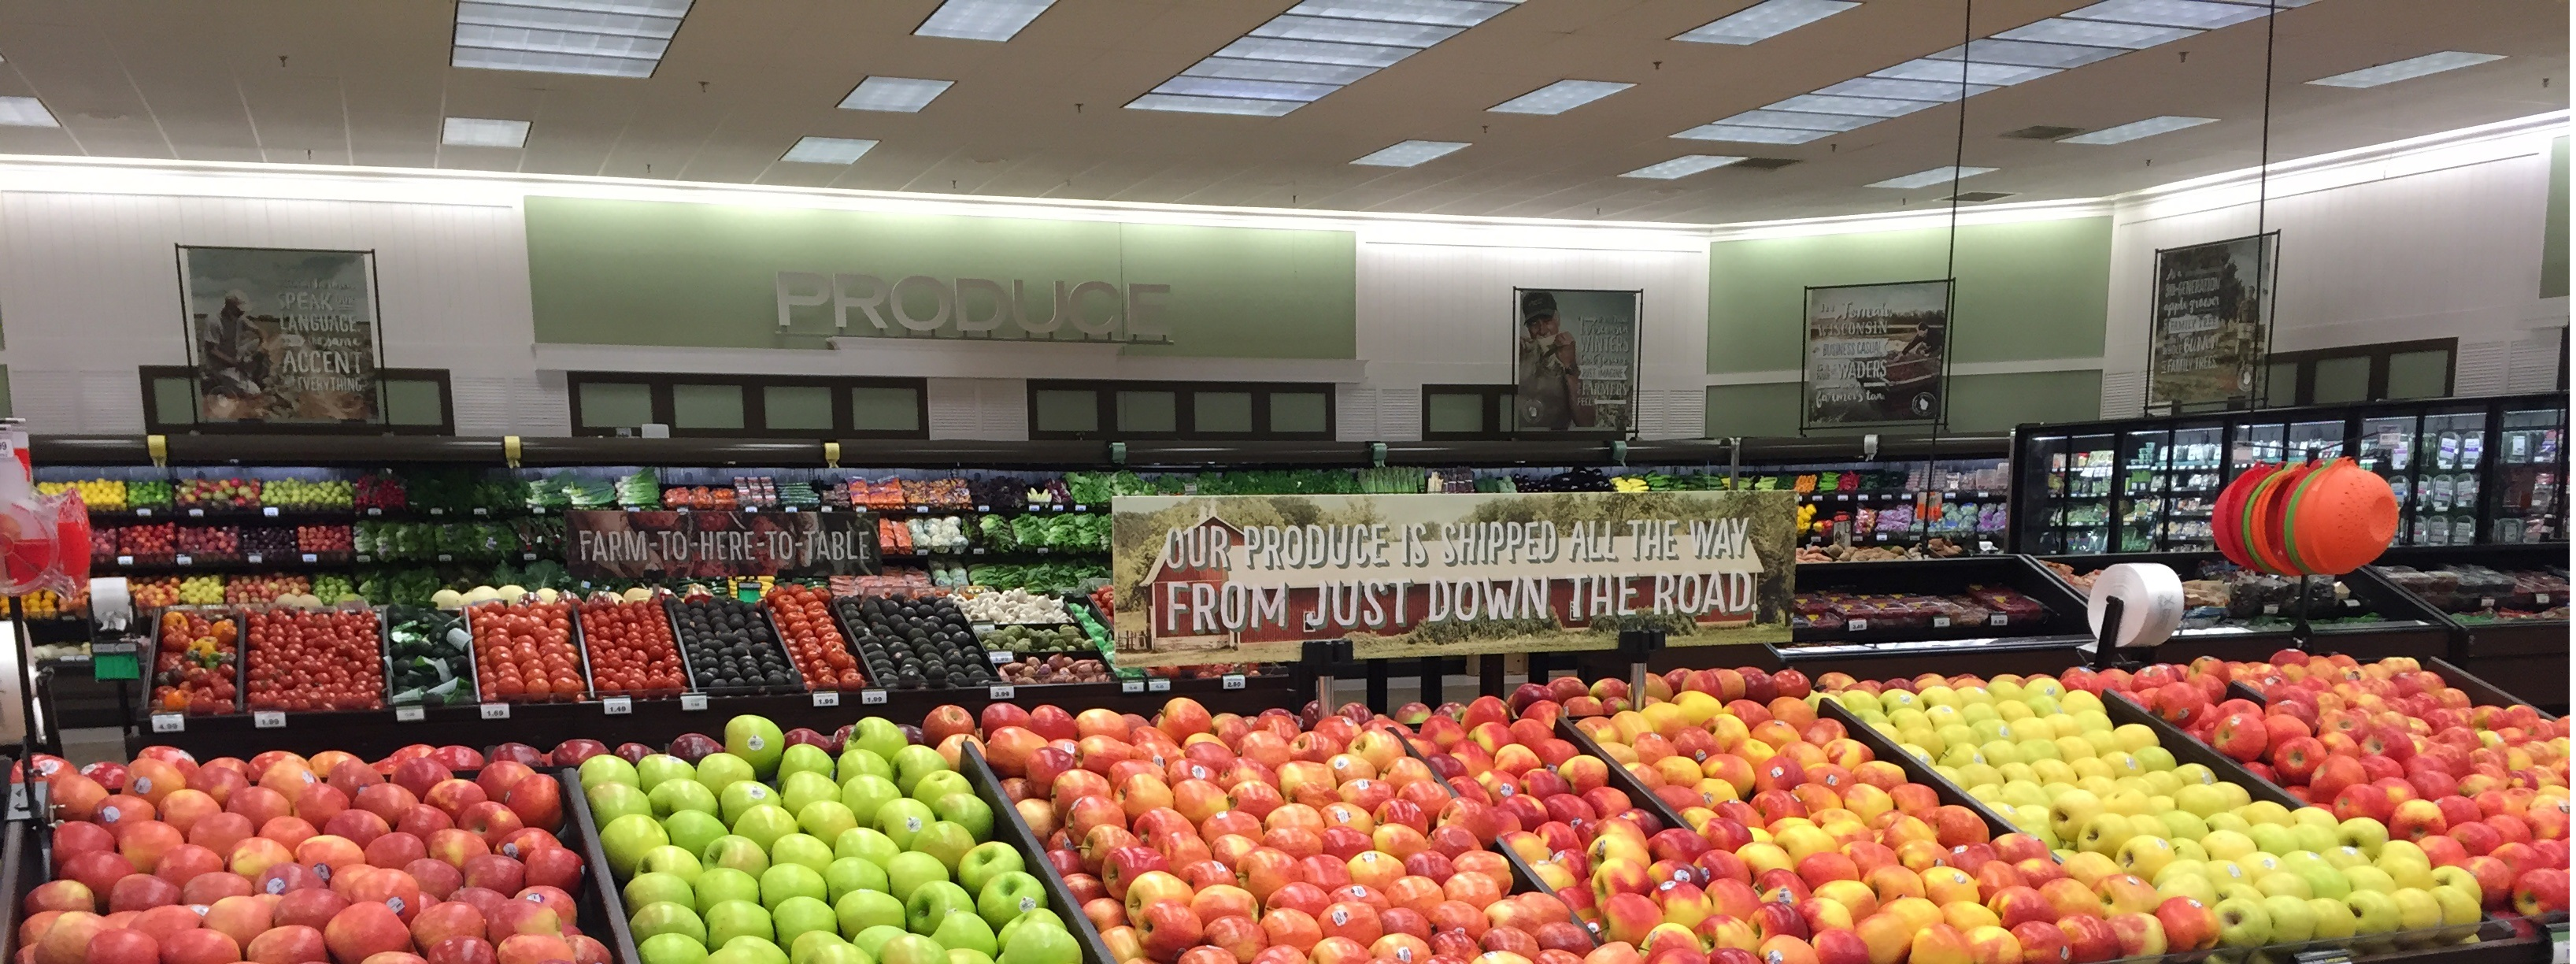 Pick 'n Save 1819 Main St. Green Bay, WI Grocery Stores - MapQuest